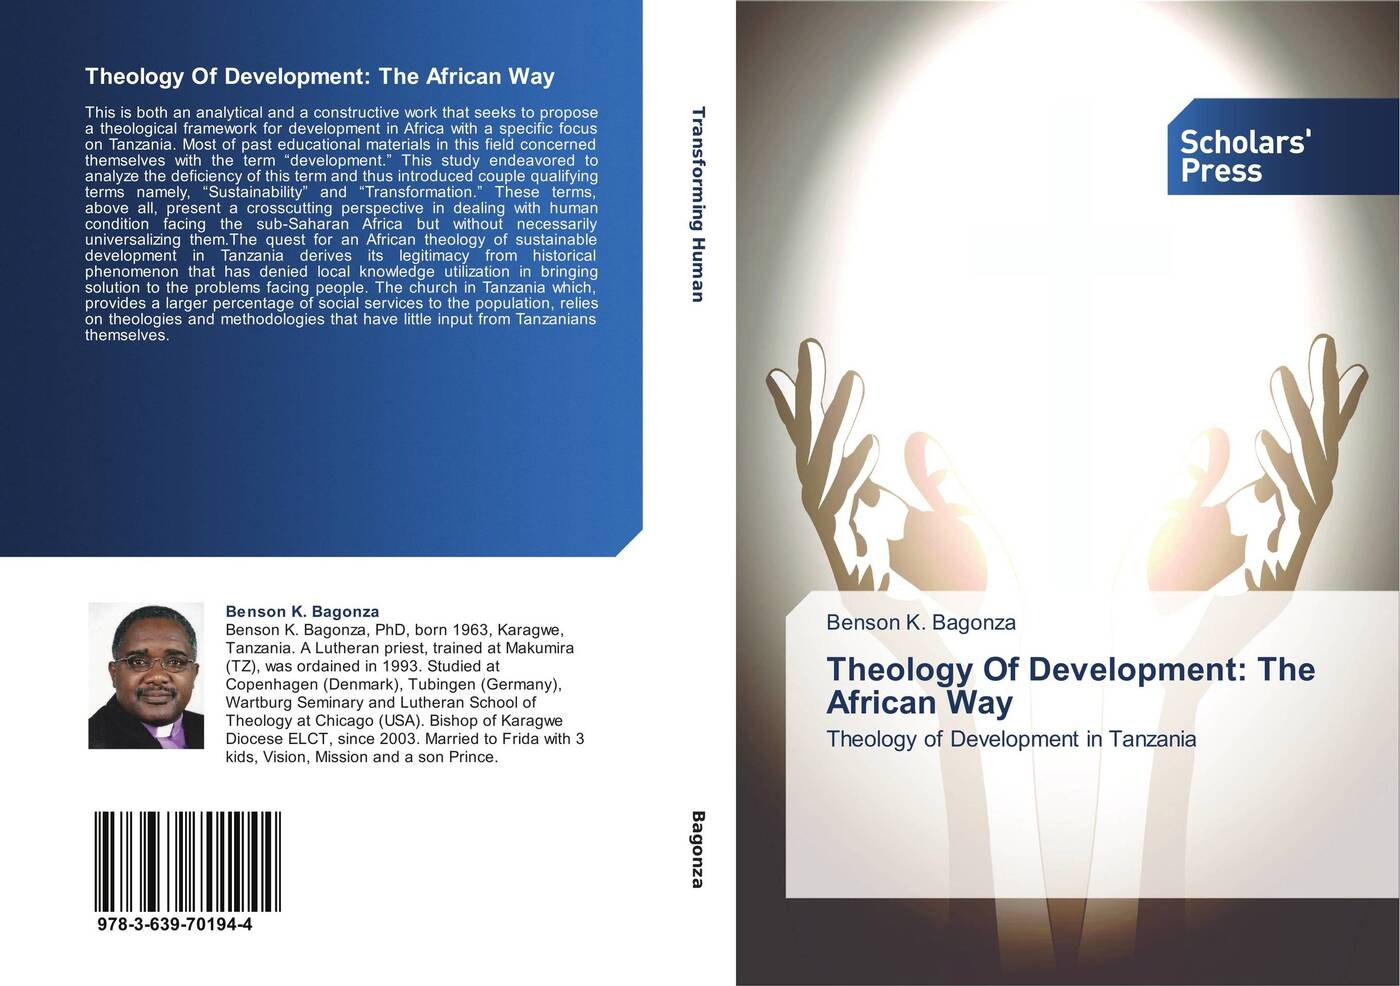 Benson K. Bagonza Theology Of Development: The African Way sarah musau a distant dream exploring the impact of women rights on tanzania s development